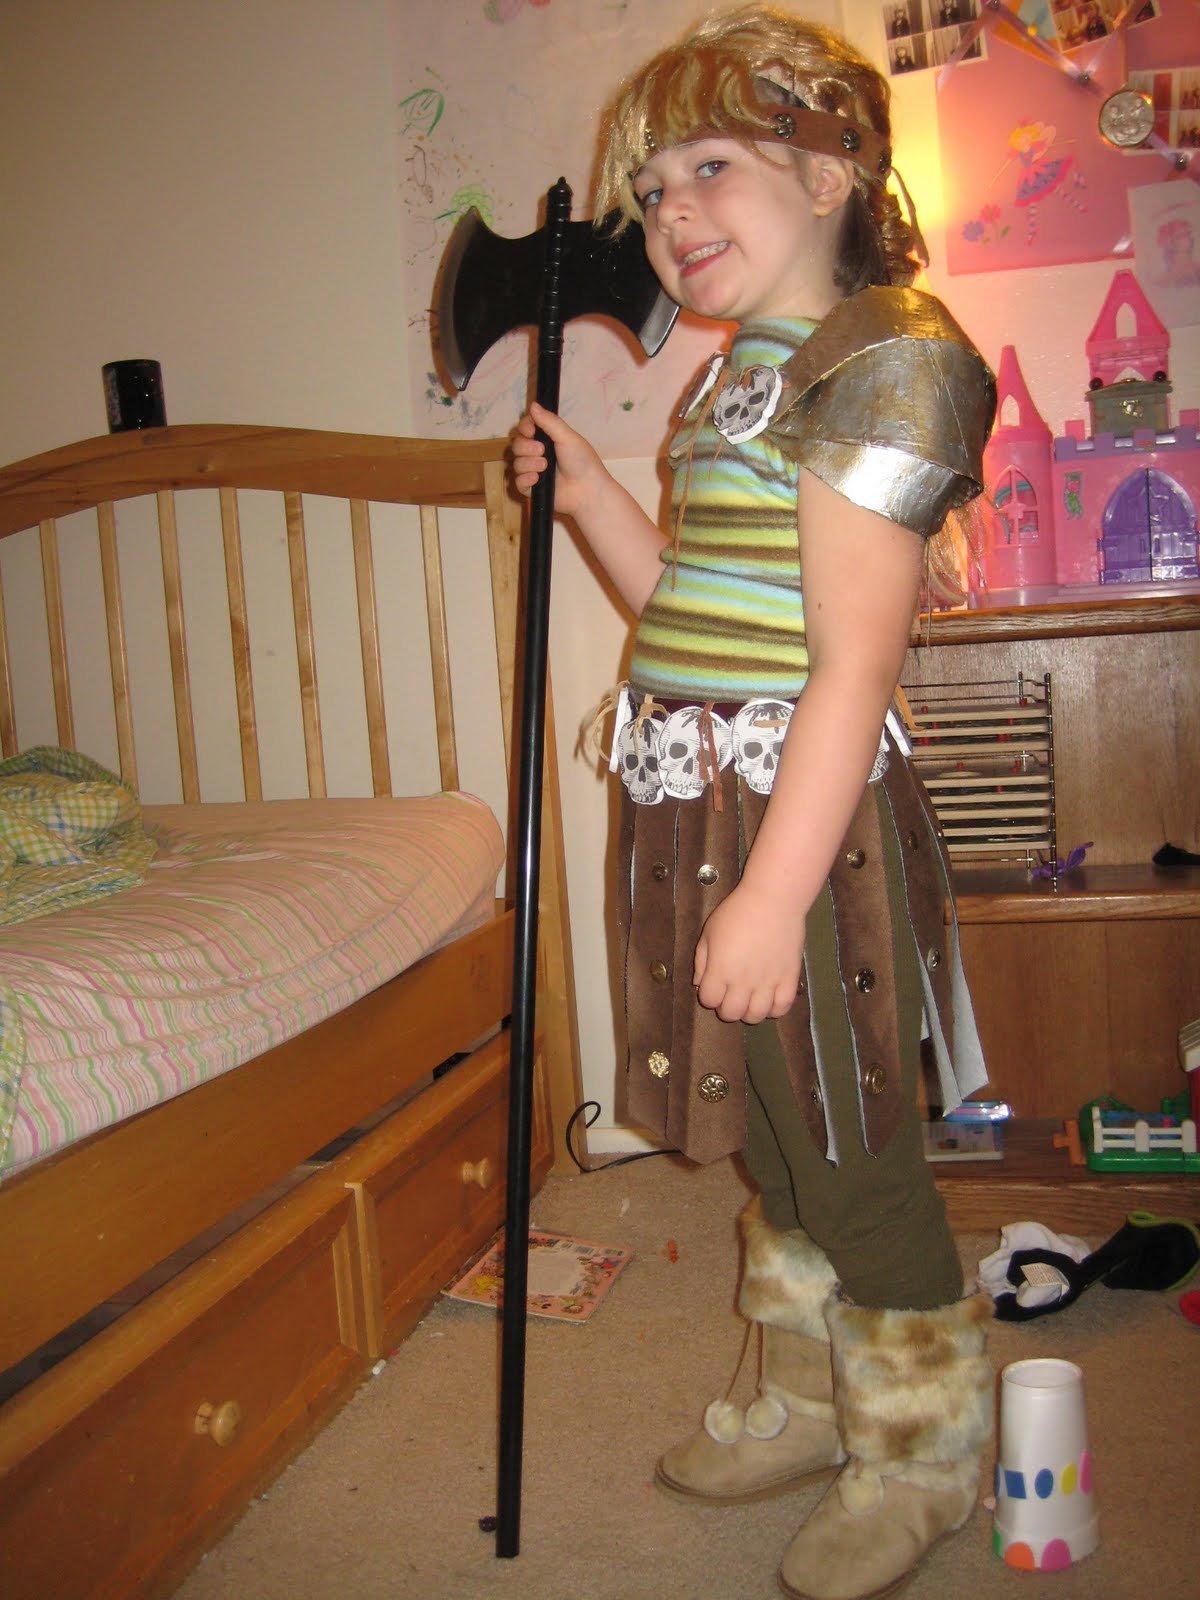 Astrid Viking Girl Halloween Costume  sc 1 st  The Problem of Audience and Purpose & The Problem of Audience and Purpose: Astrid Viking Girl Halloween ...